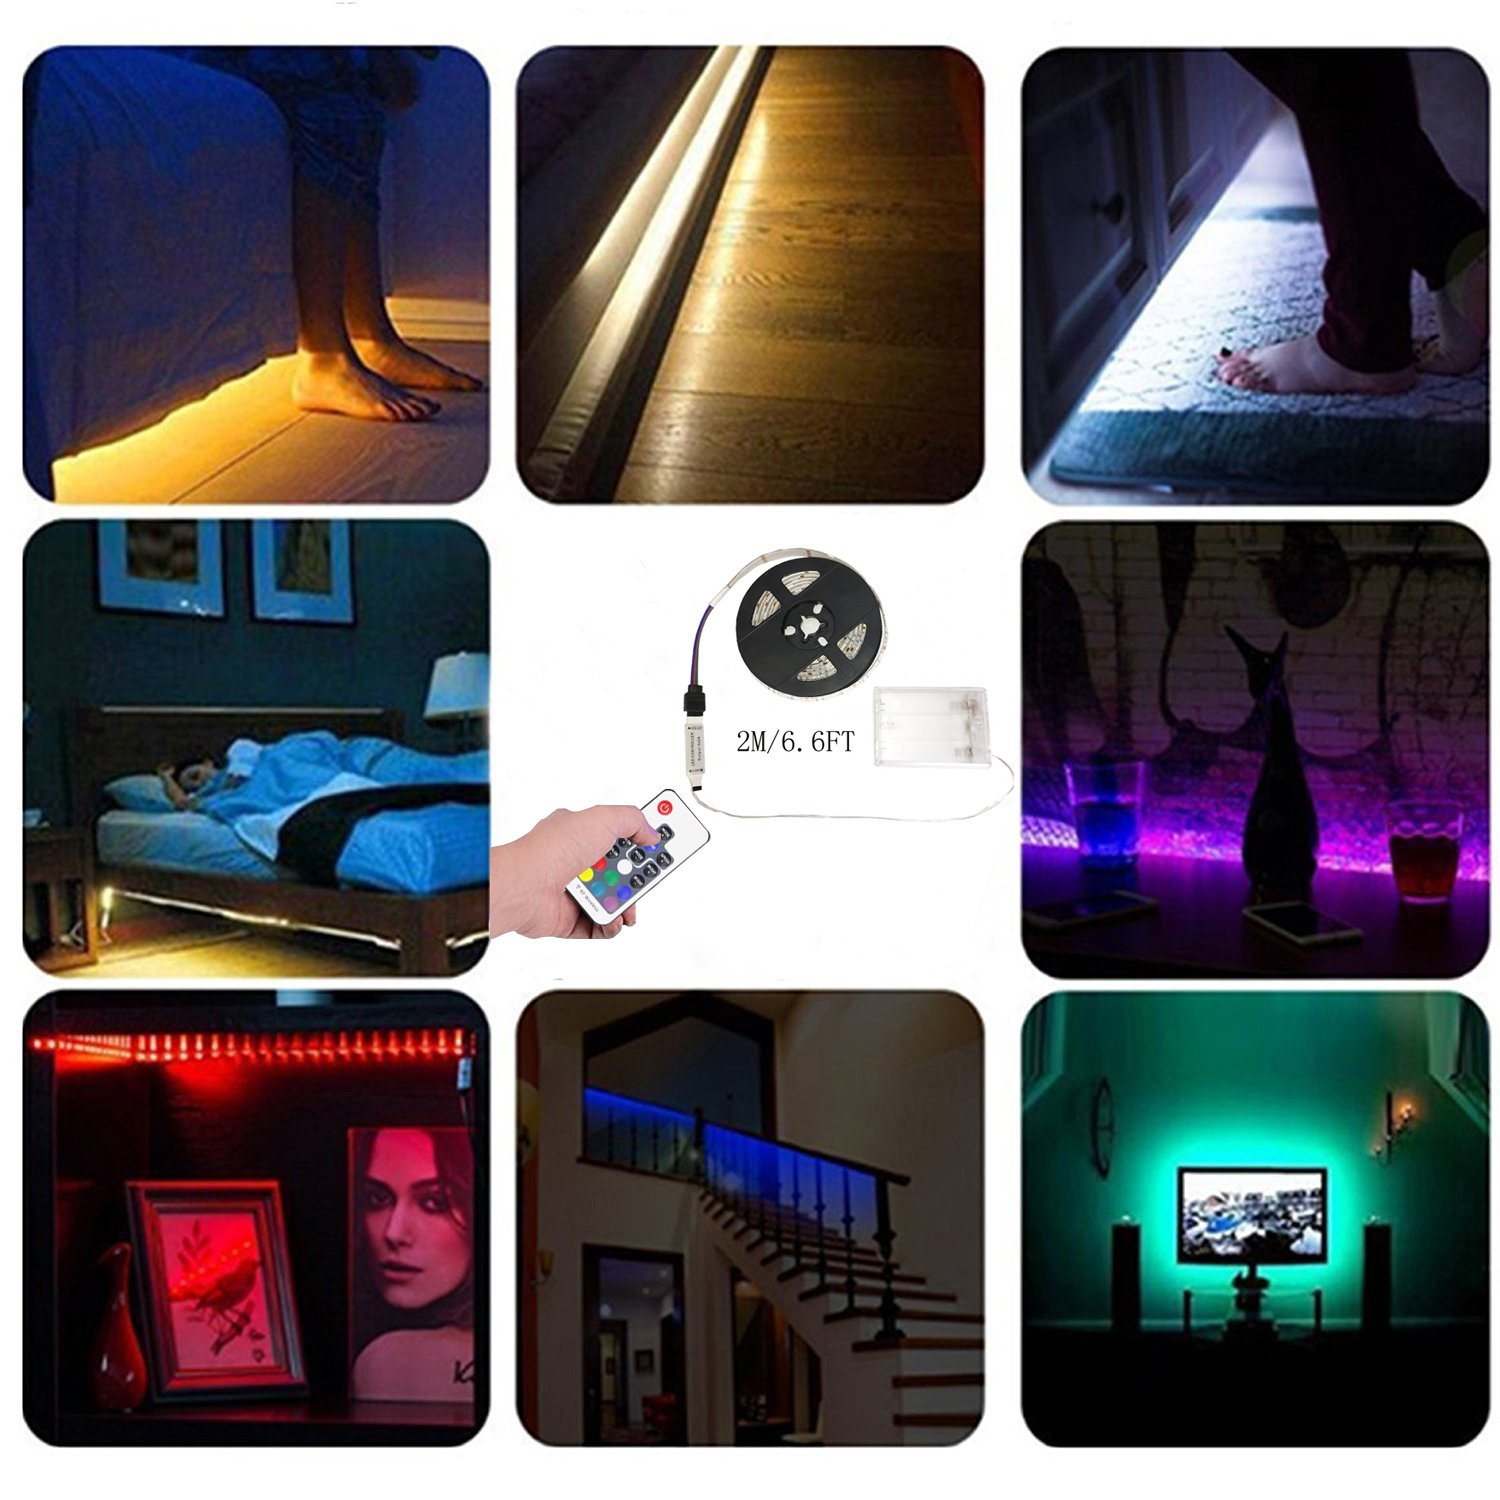 Details about aijiaer Battery Powered Led Strip Lights, 5050 2M6.6FT, Waterproof Flexible